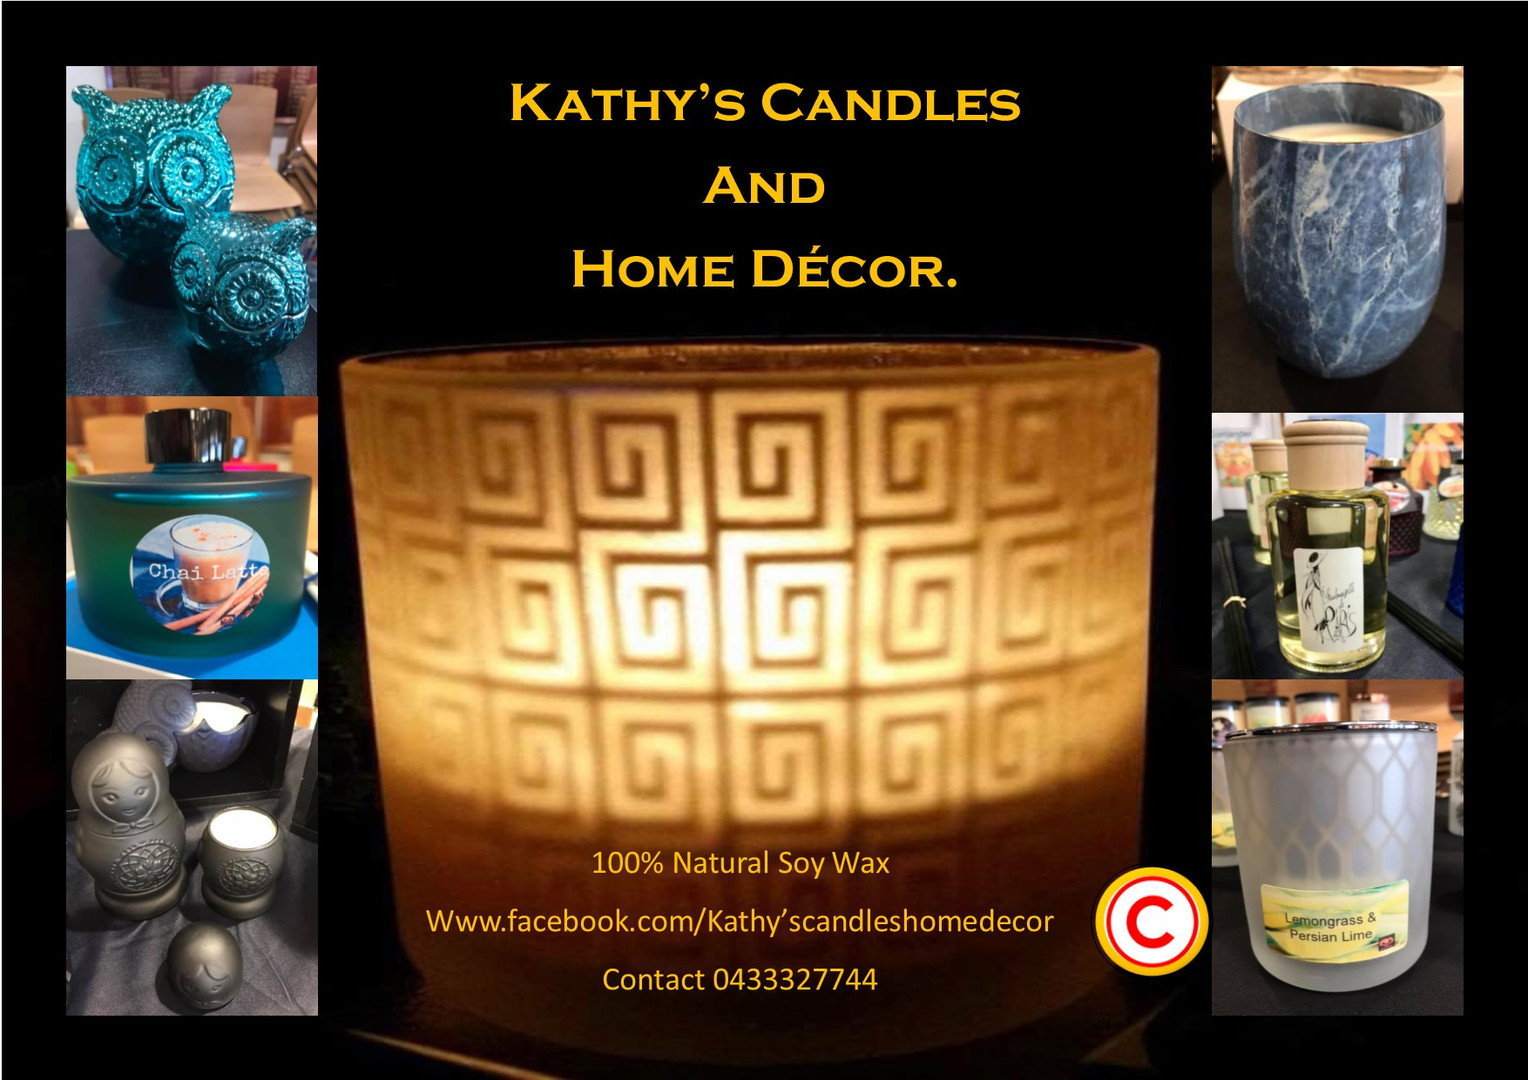 Kathy's Candles Ad 2019.jpg